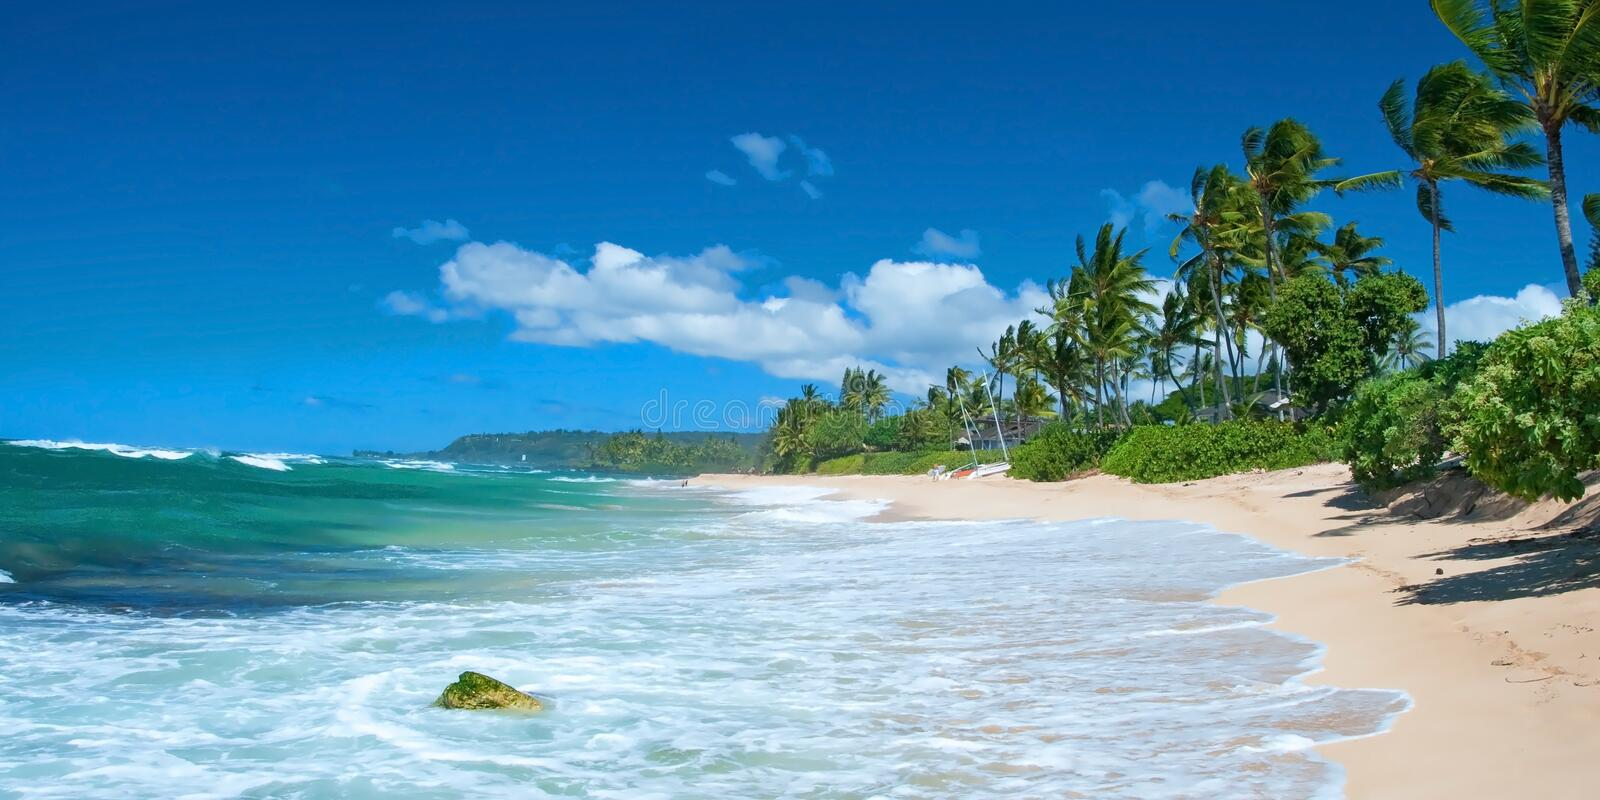 Download Untouched Sandy Beach With Palms Trees And Azure Ocean In Backgr Stock Image - Image: 32273711